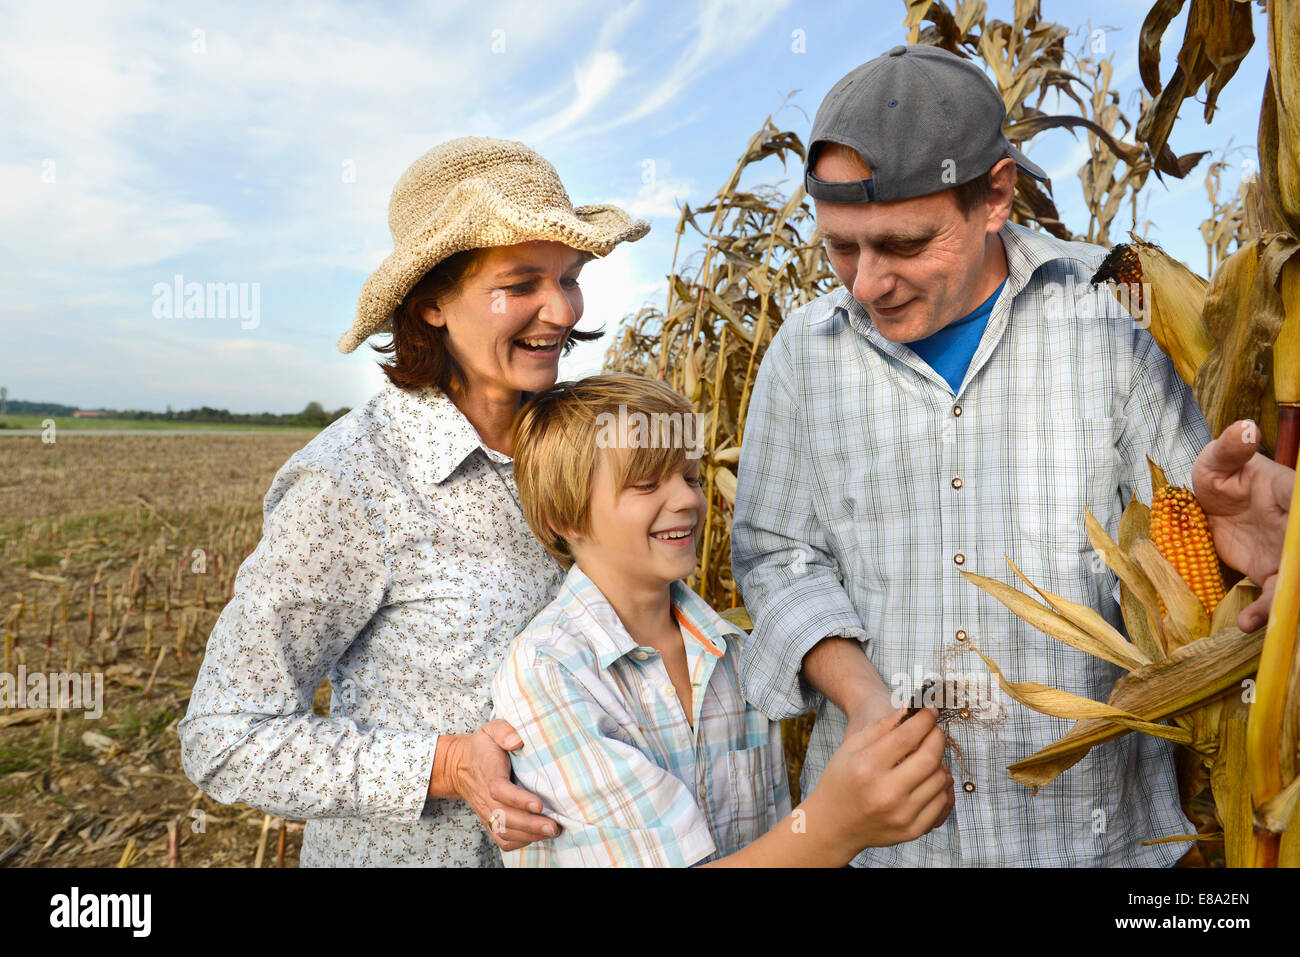 Farmer parents showing ripe corn to their son, Bavaria, Germany - Stock Image